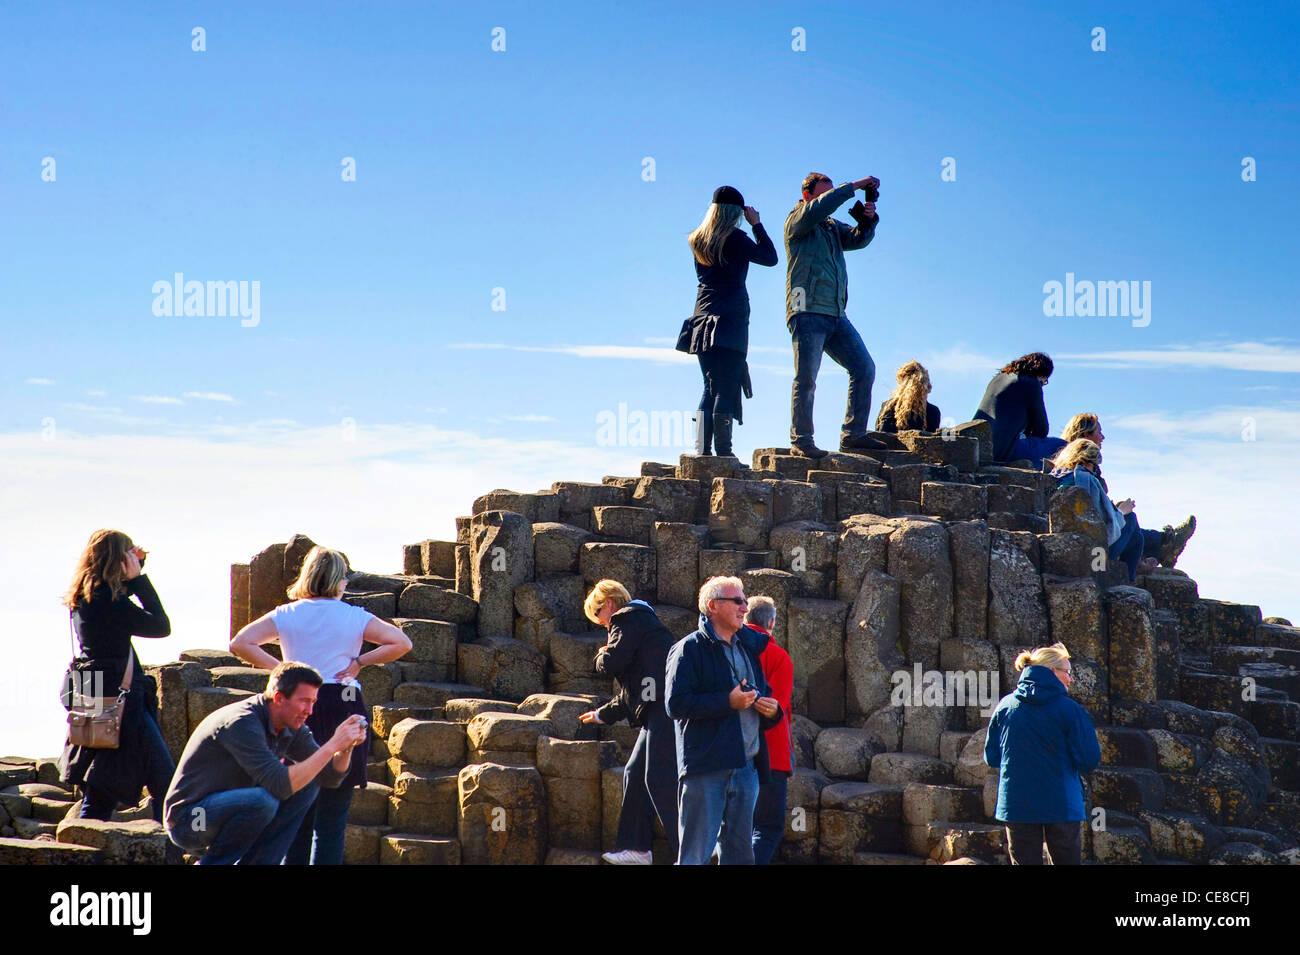 People climbing on the rocks at Giant's Causeway, Northern Ireland Stock Photo